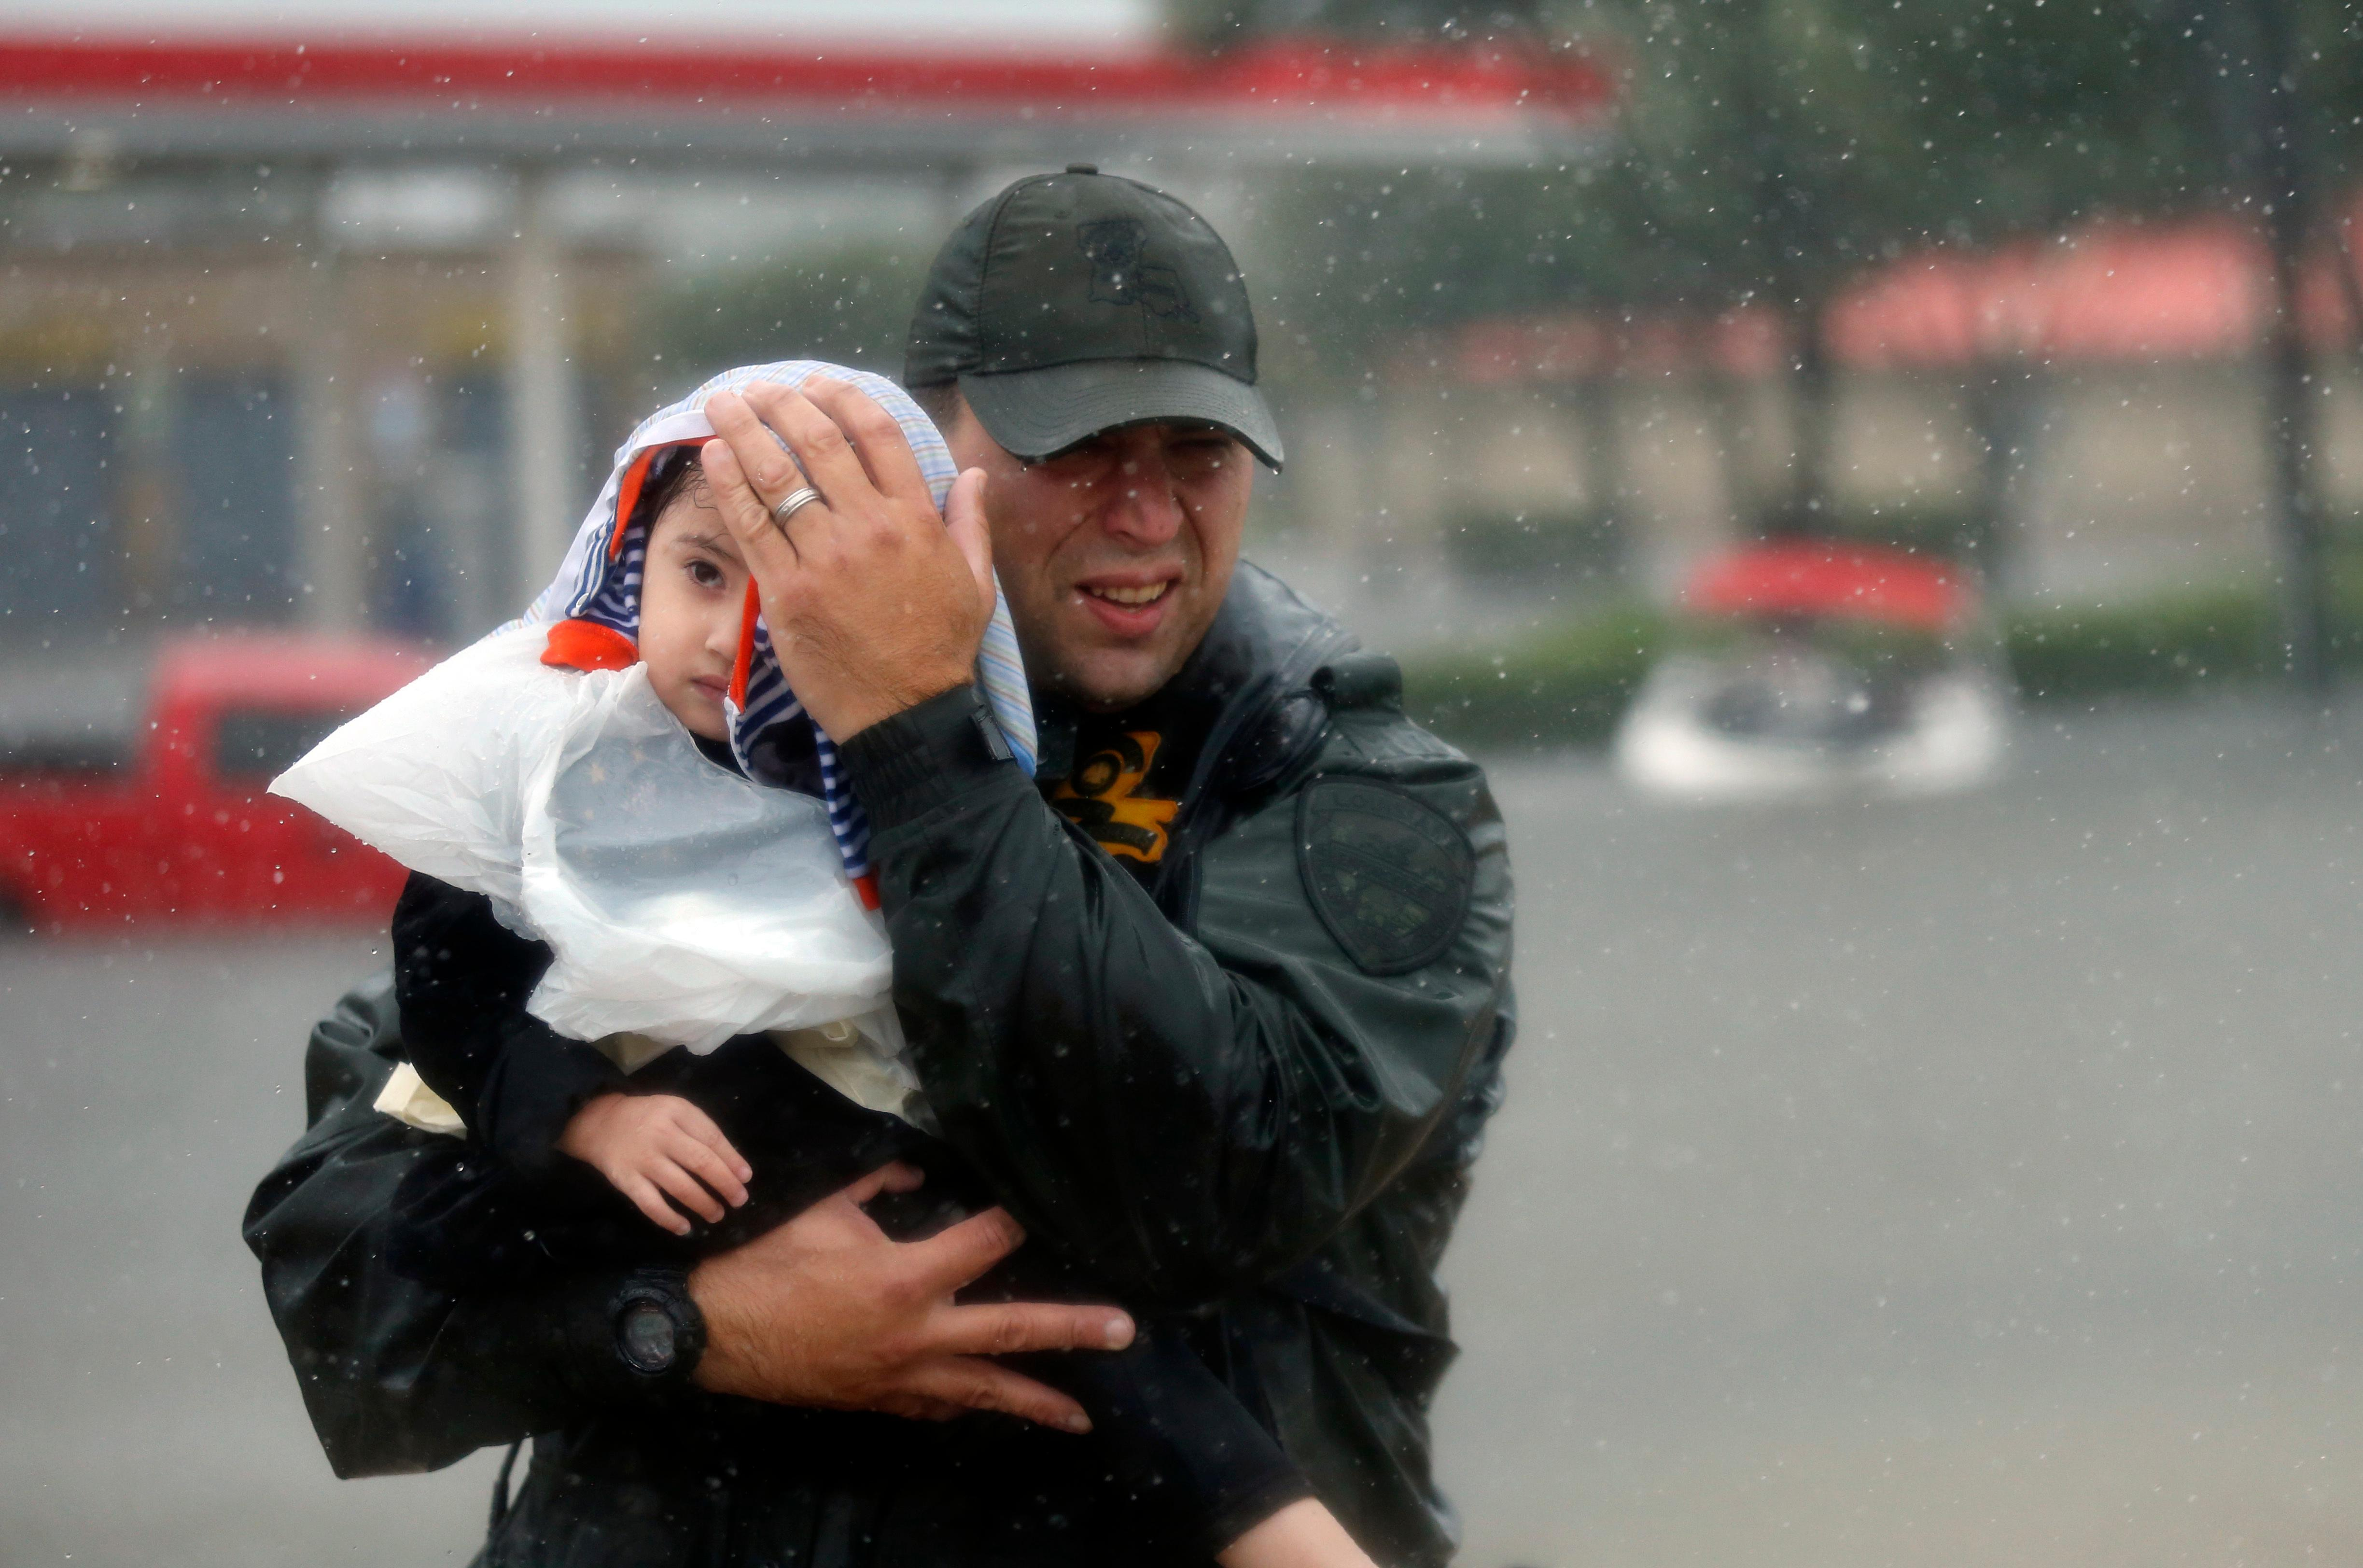 Sgt. Chad Watts, of the Louisiana Department of Wildlife and Fisheries, holds Madelyn Nguyen, 2, after he rescued her and her family by boat from floodwaters of Tropical Storm Harvey, which hit Texas last week as a Category 4 hurricane, in Houston, Monday, Aug. 28, 2017. (AP Photo/Gerald Herbert)